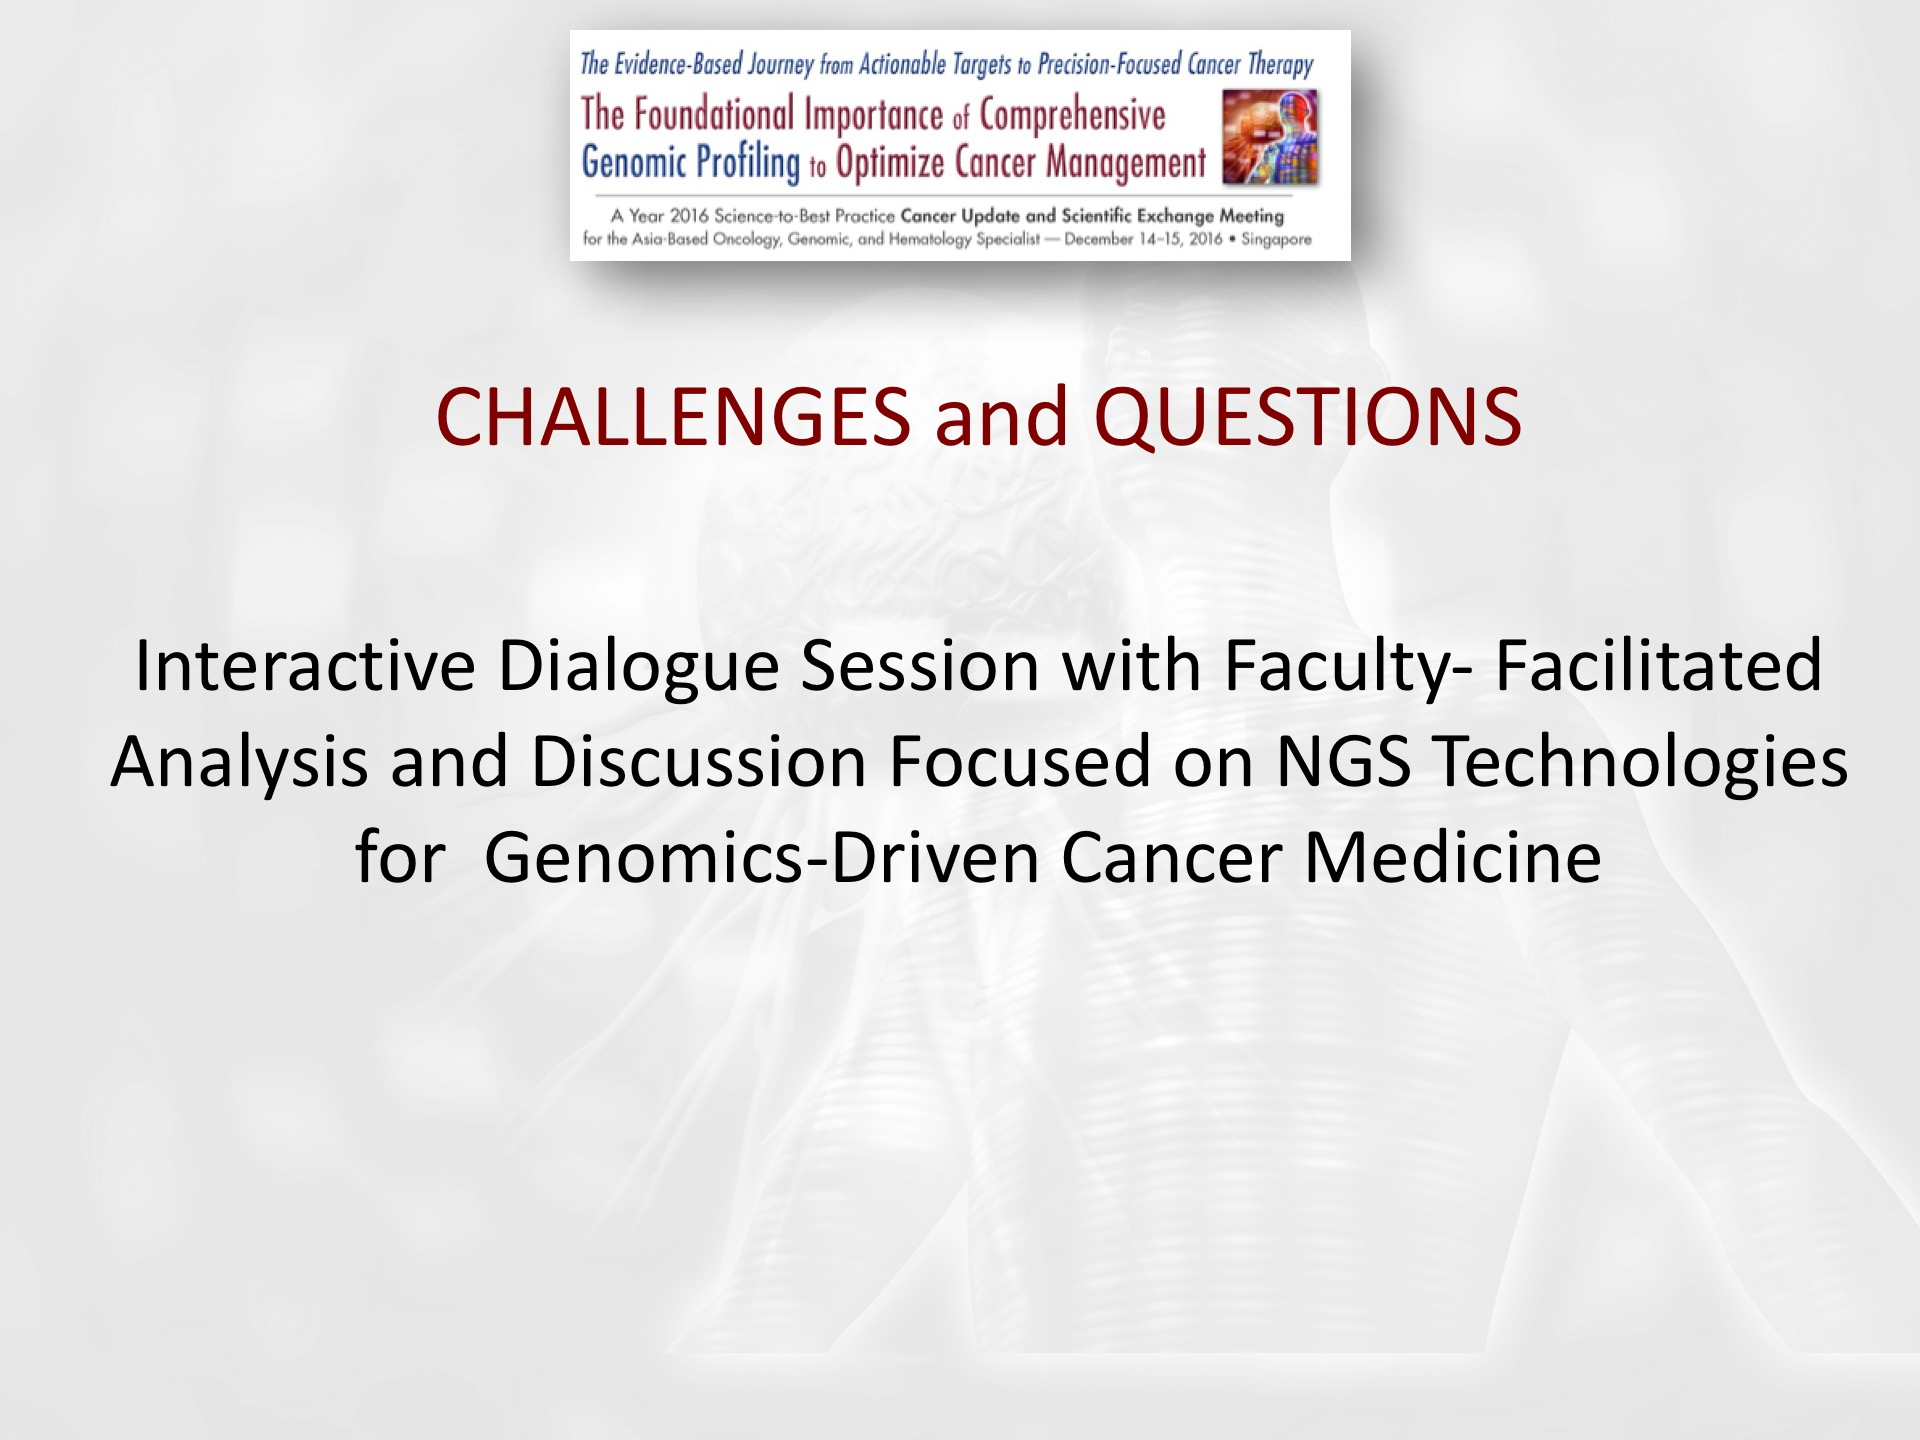 Challenges and Questions #1 - Interactive Dialogue Session